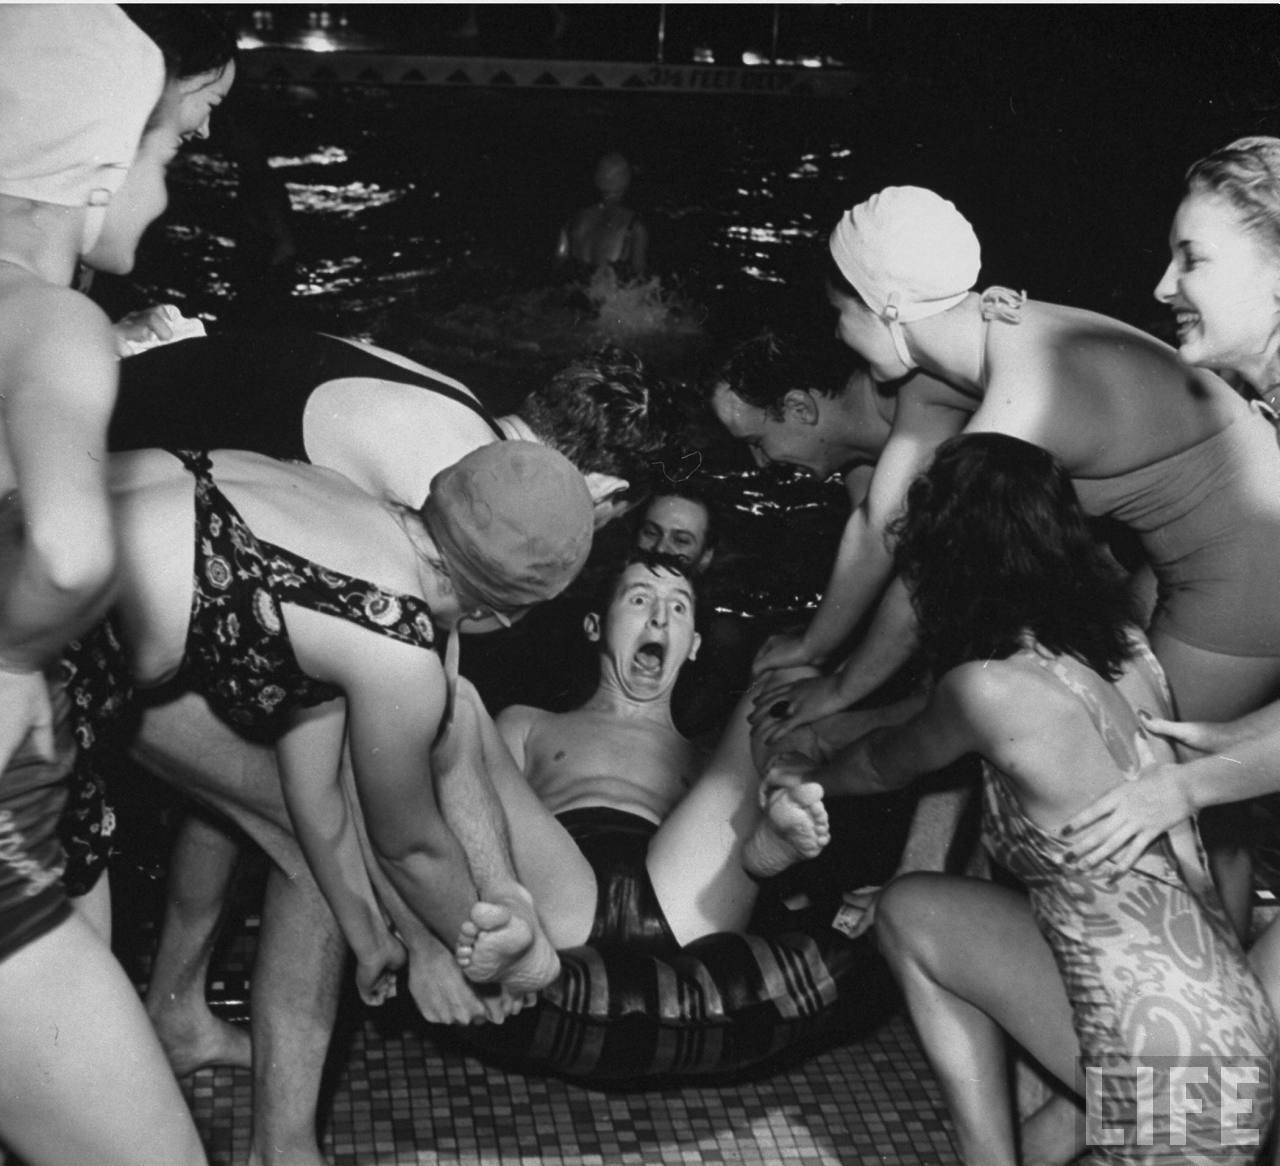 And The Guess From Messynessy That This Might Have Been Some Sort Of Promotional Or Wrap Party For 1940 Musical Starring Lucille Ball Too Many S